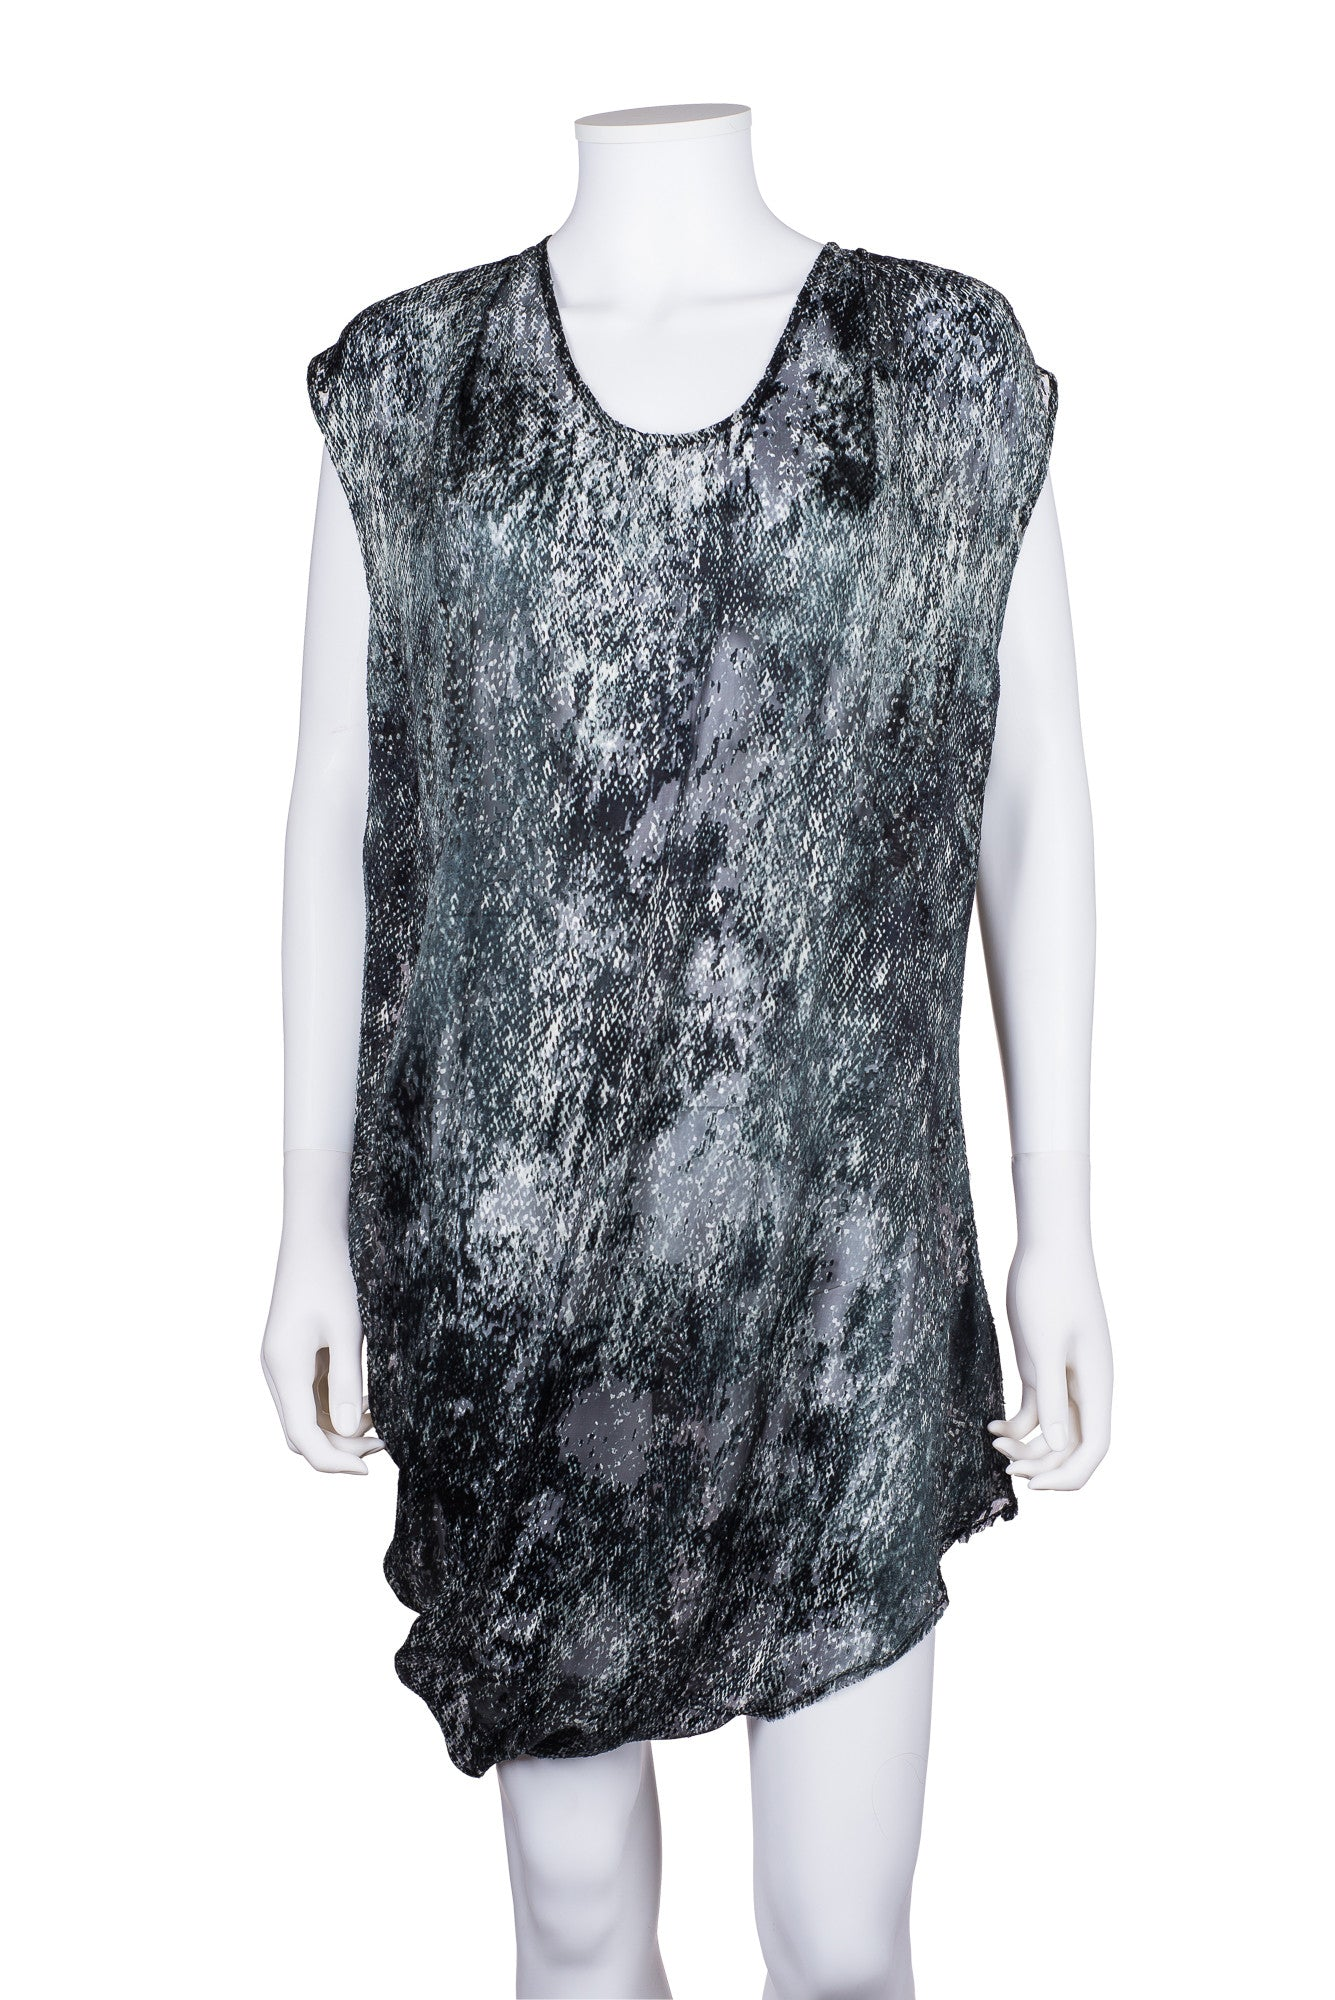 HELMUT LANG Asymmetrical Patterned Top